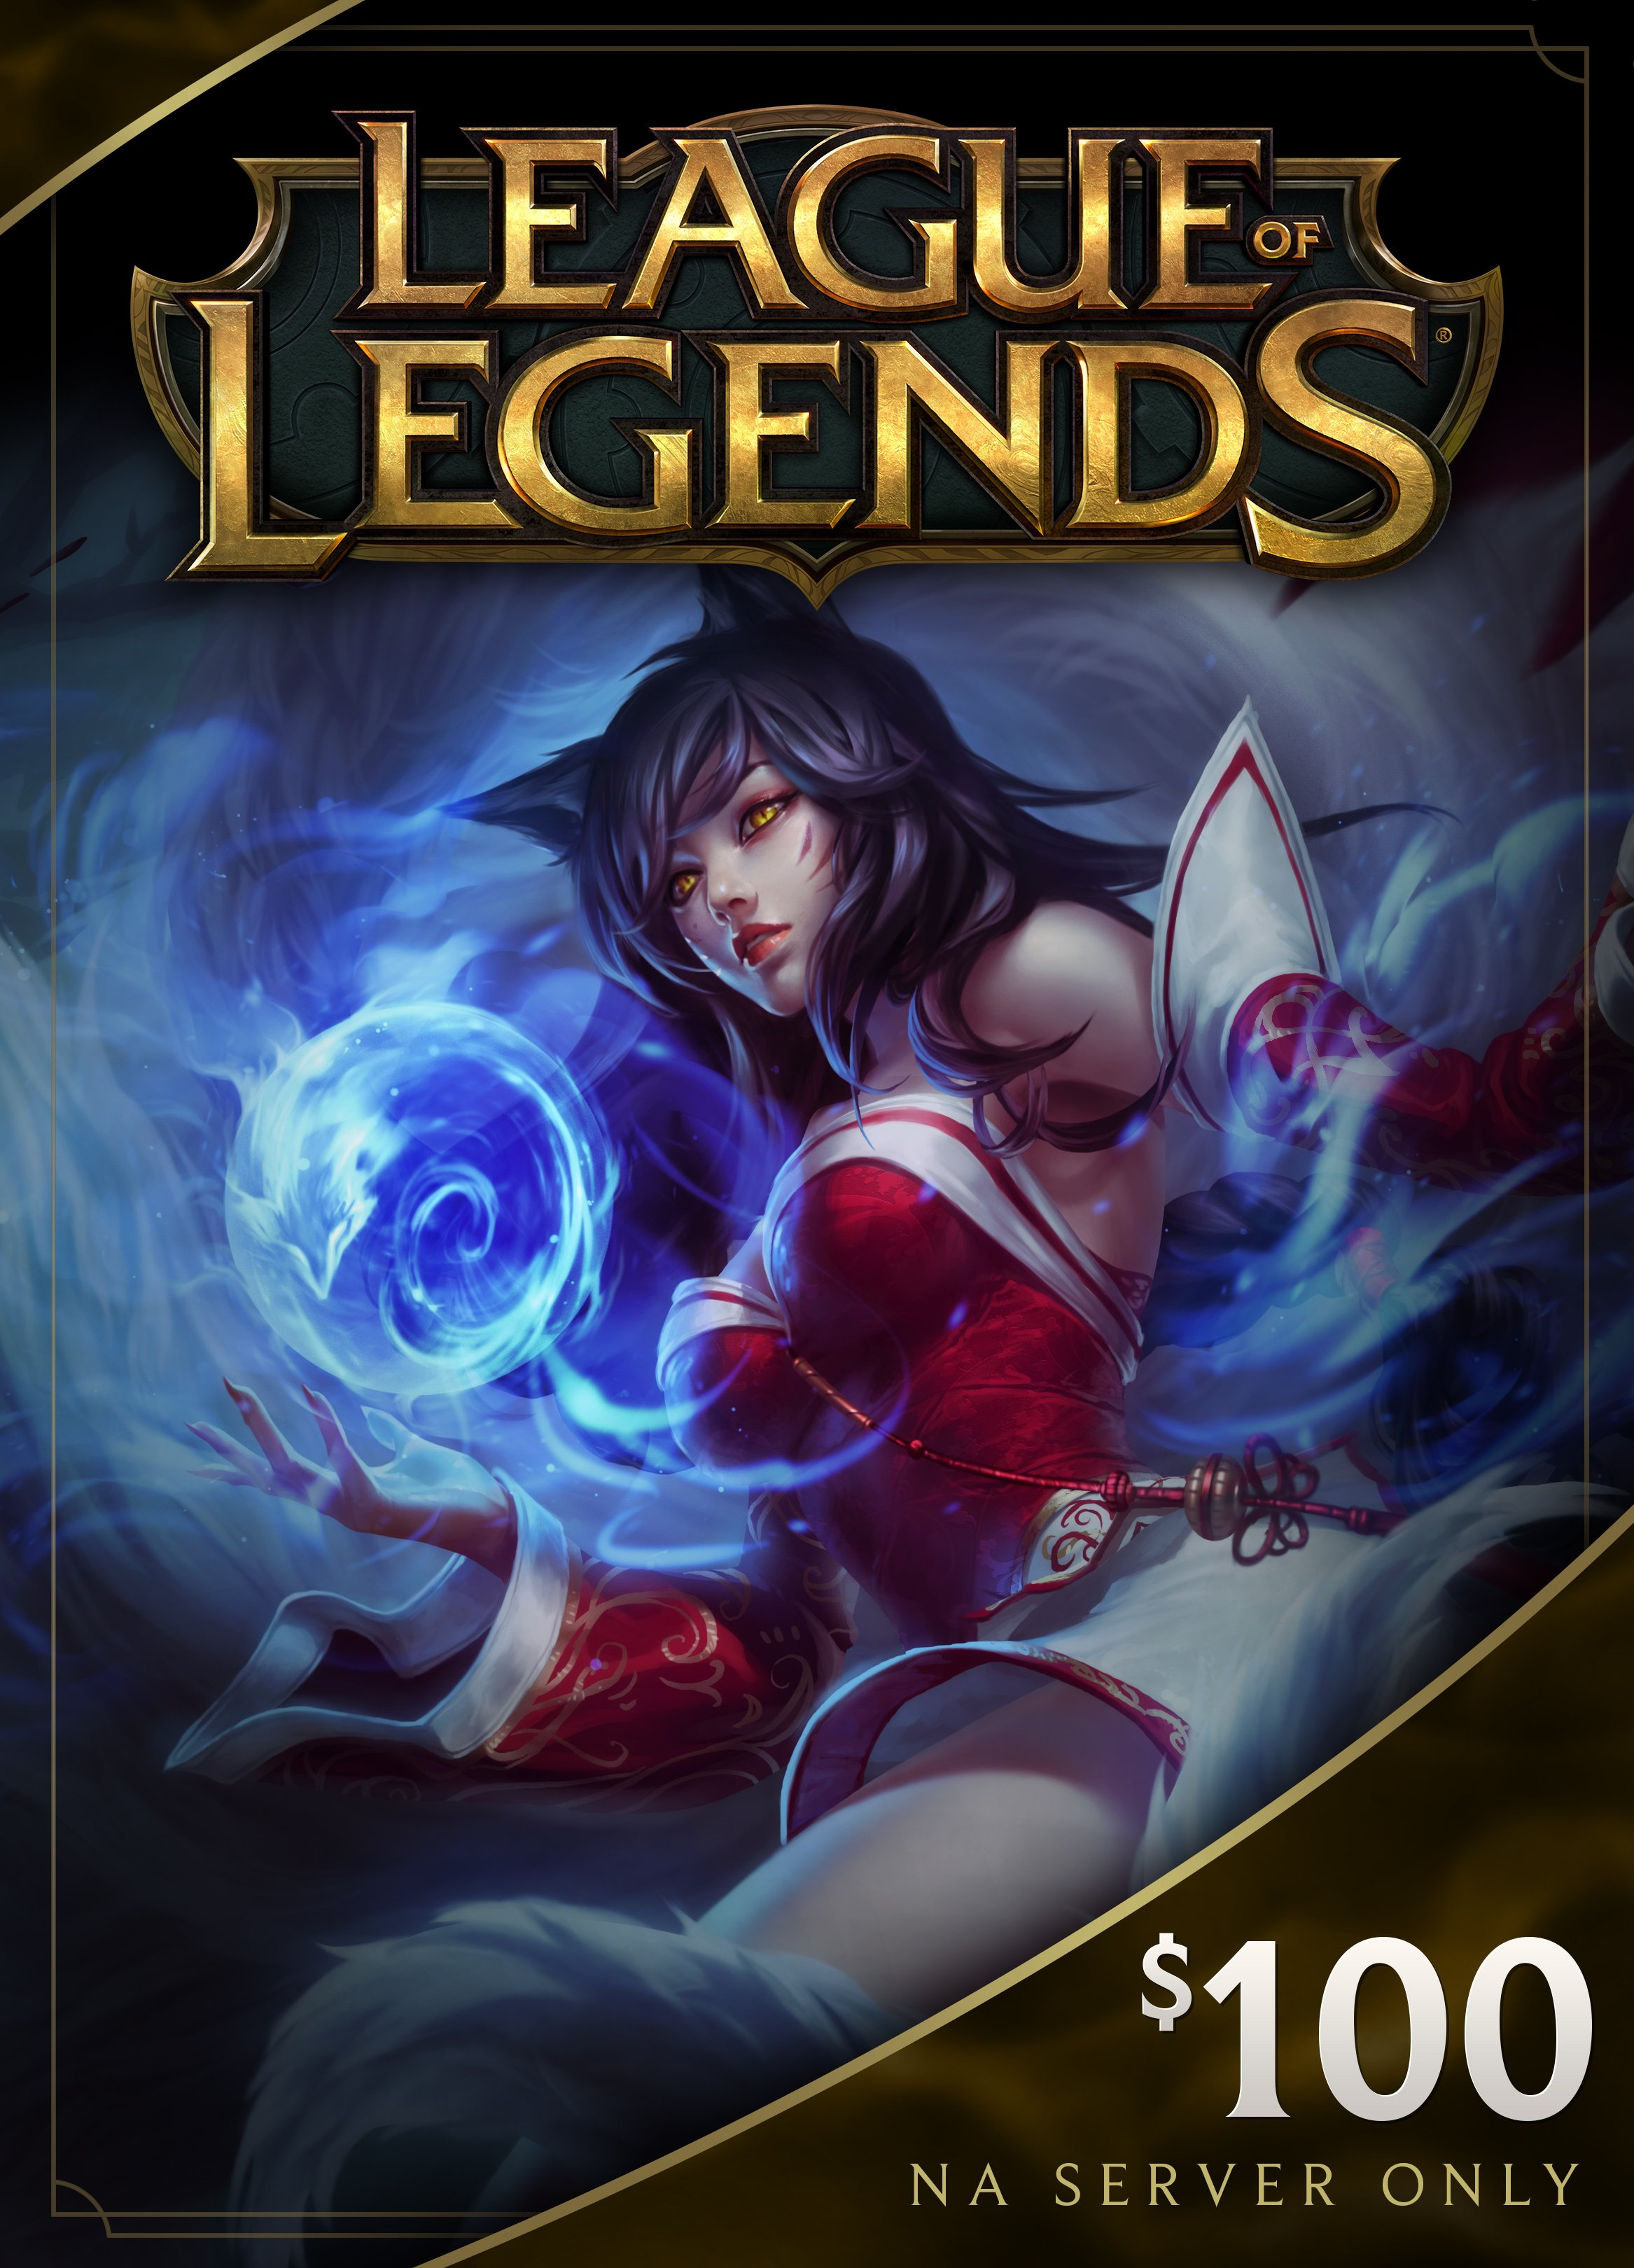 League of Legends $100 Gift Card – 15000 Riot Points - NA Server Only [Online Game Code] by Riot Games